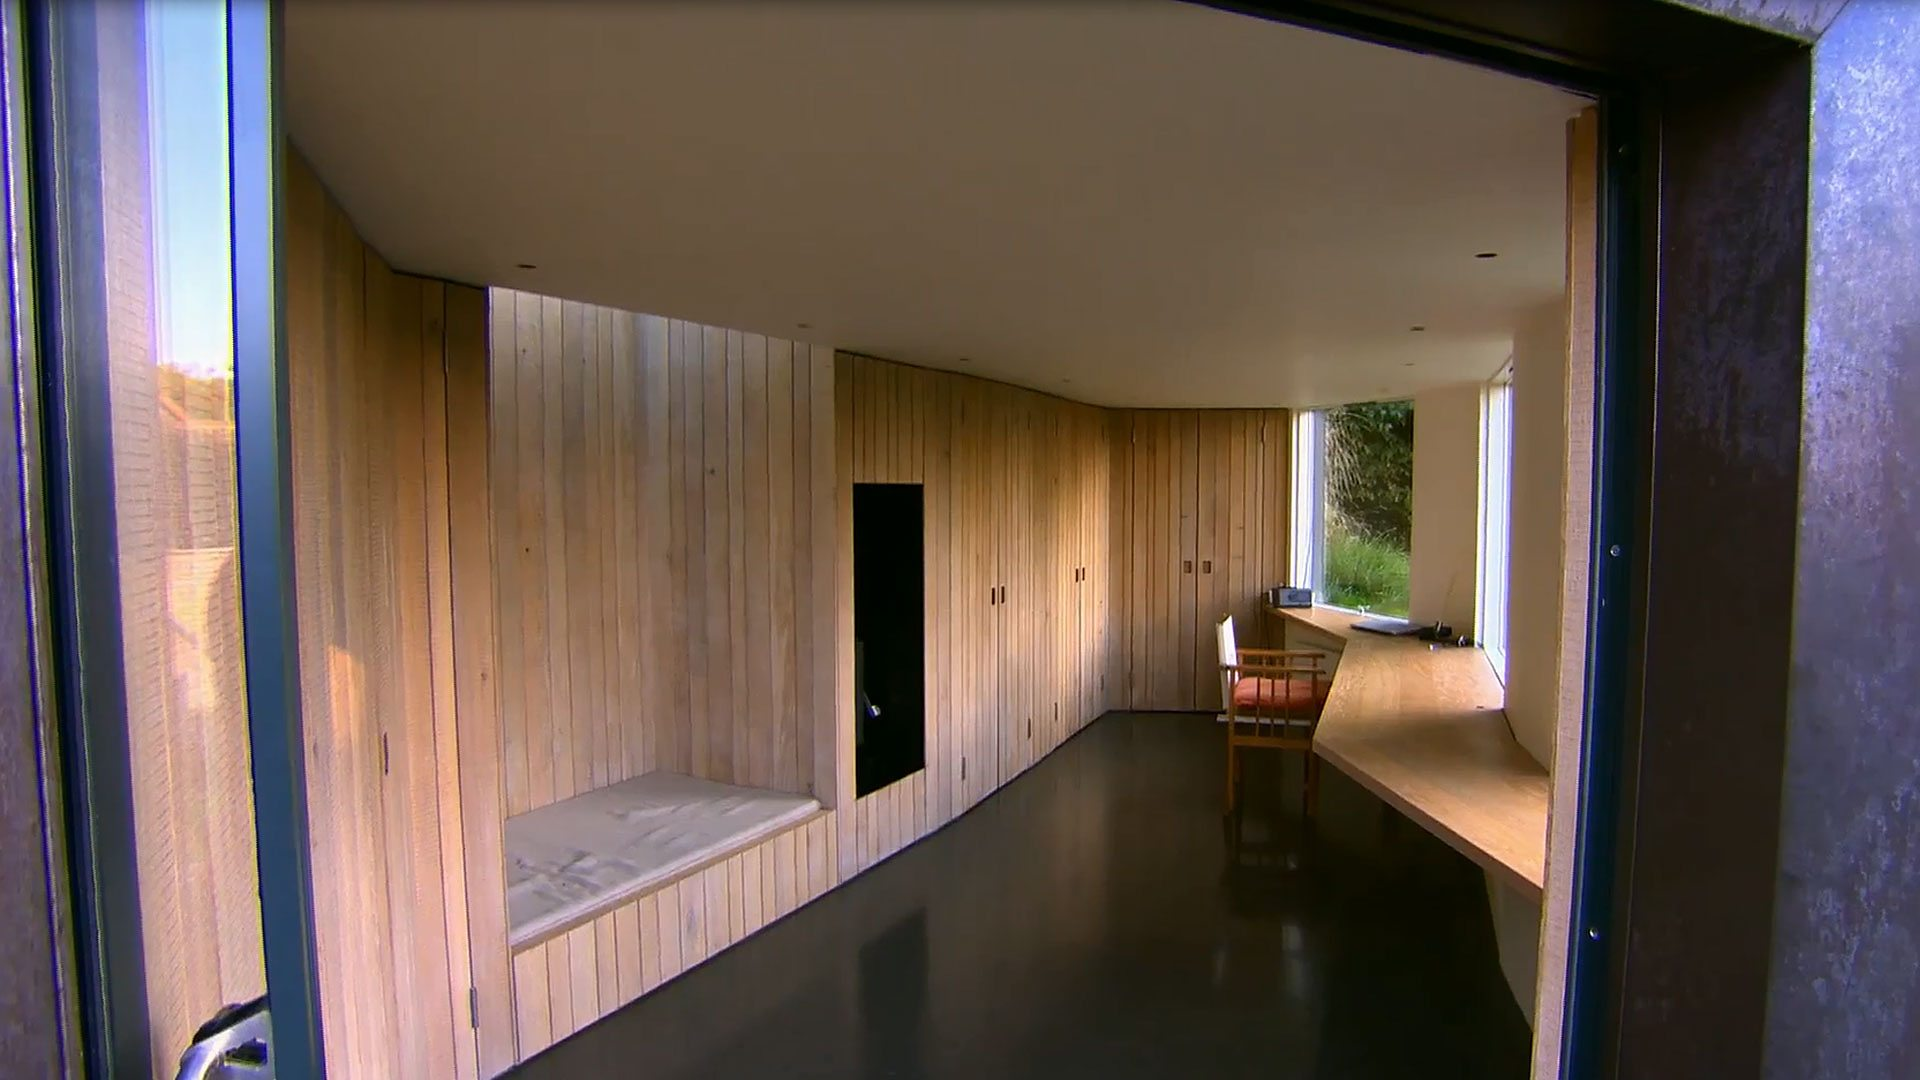 BBC Two - The £100k House: Tricks of the Trade, Series 2, Jaimelee ...